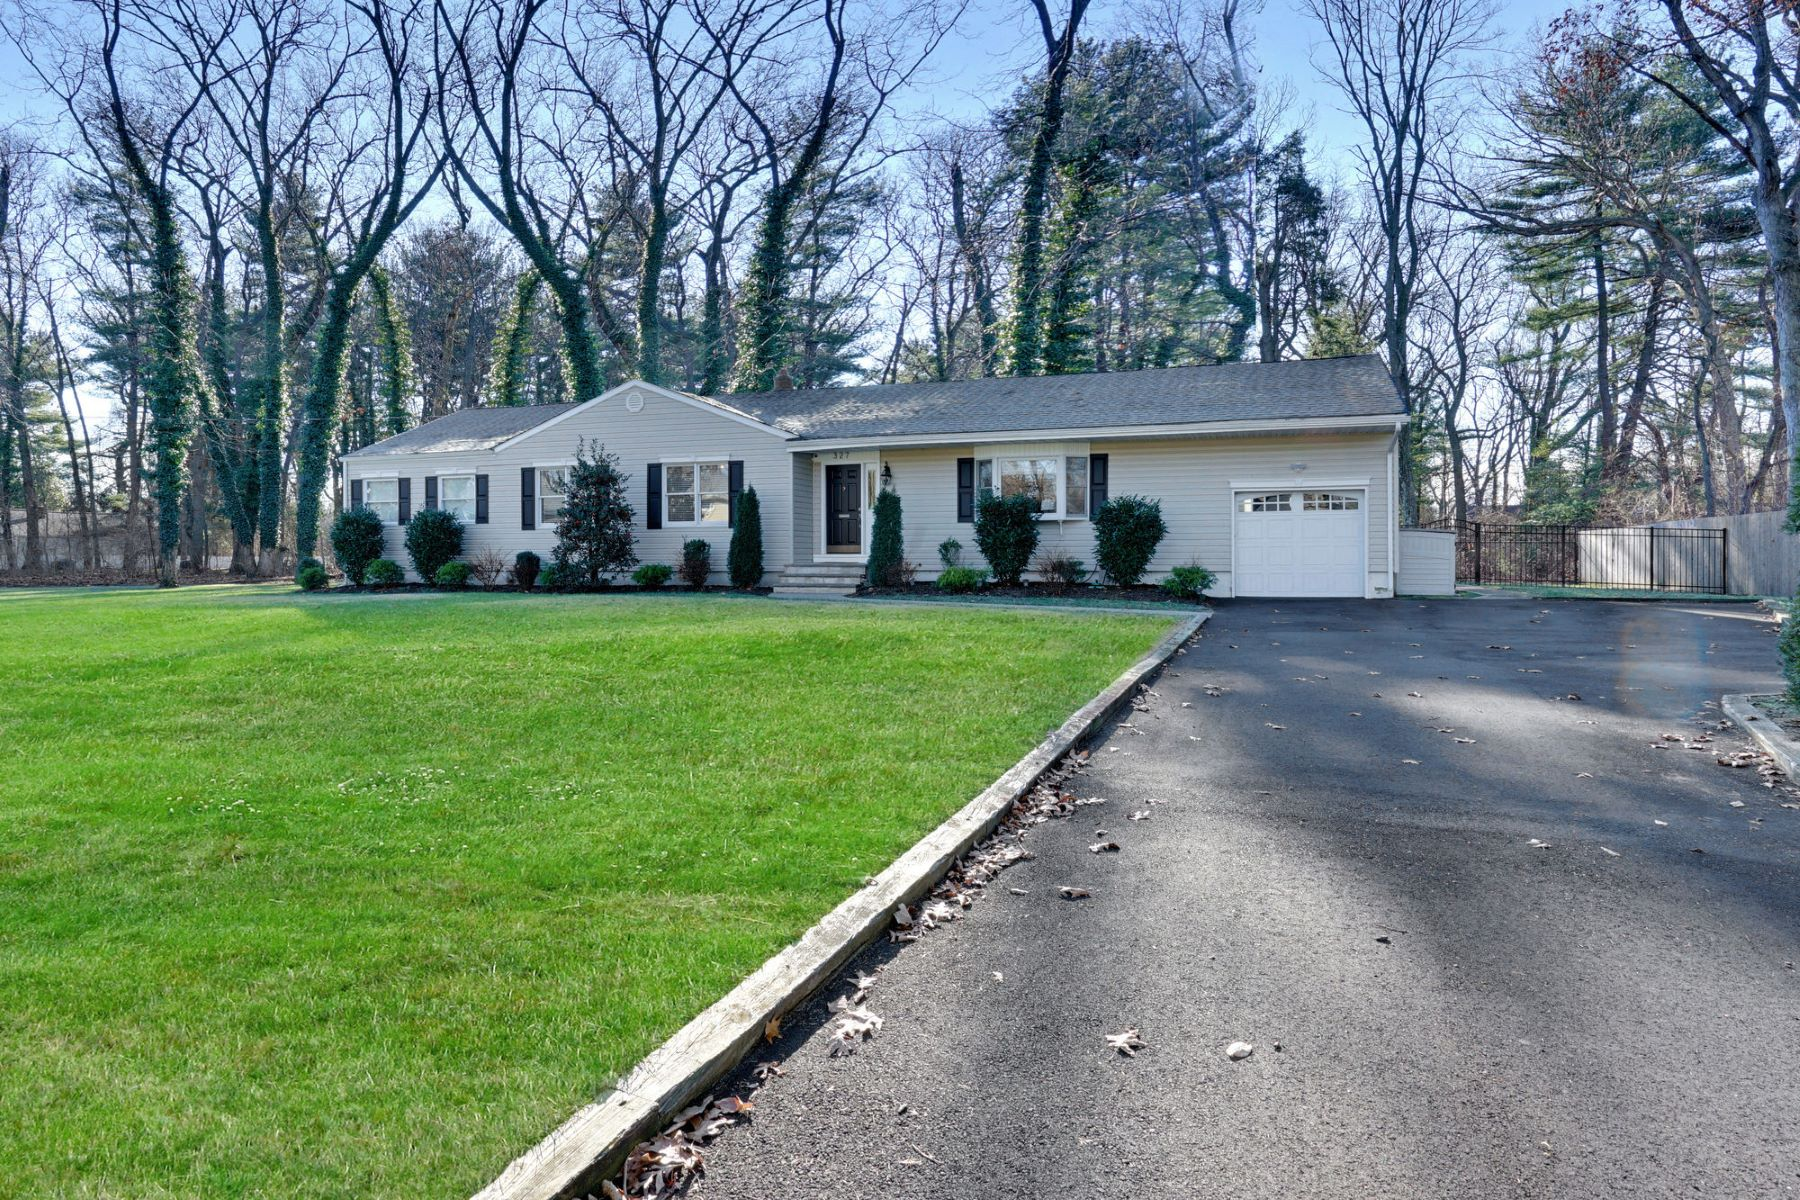 Single Family Homes for Sale at Remarkable on Riveredge 327 Riveredge Road Tinton Falls, New Jersey 07724 United States